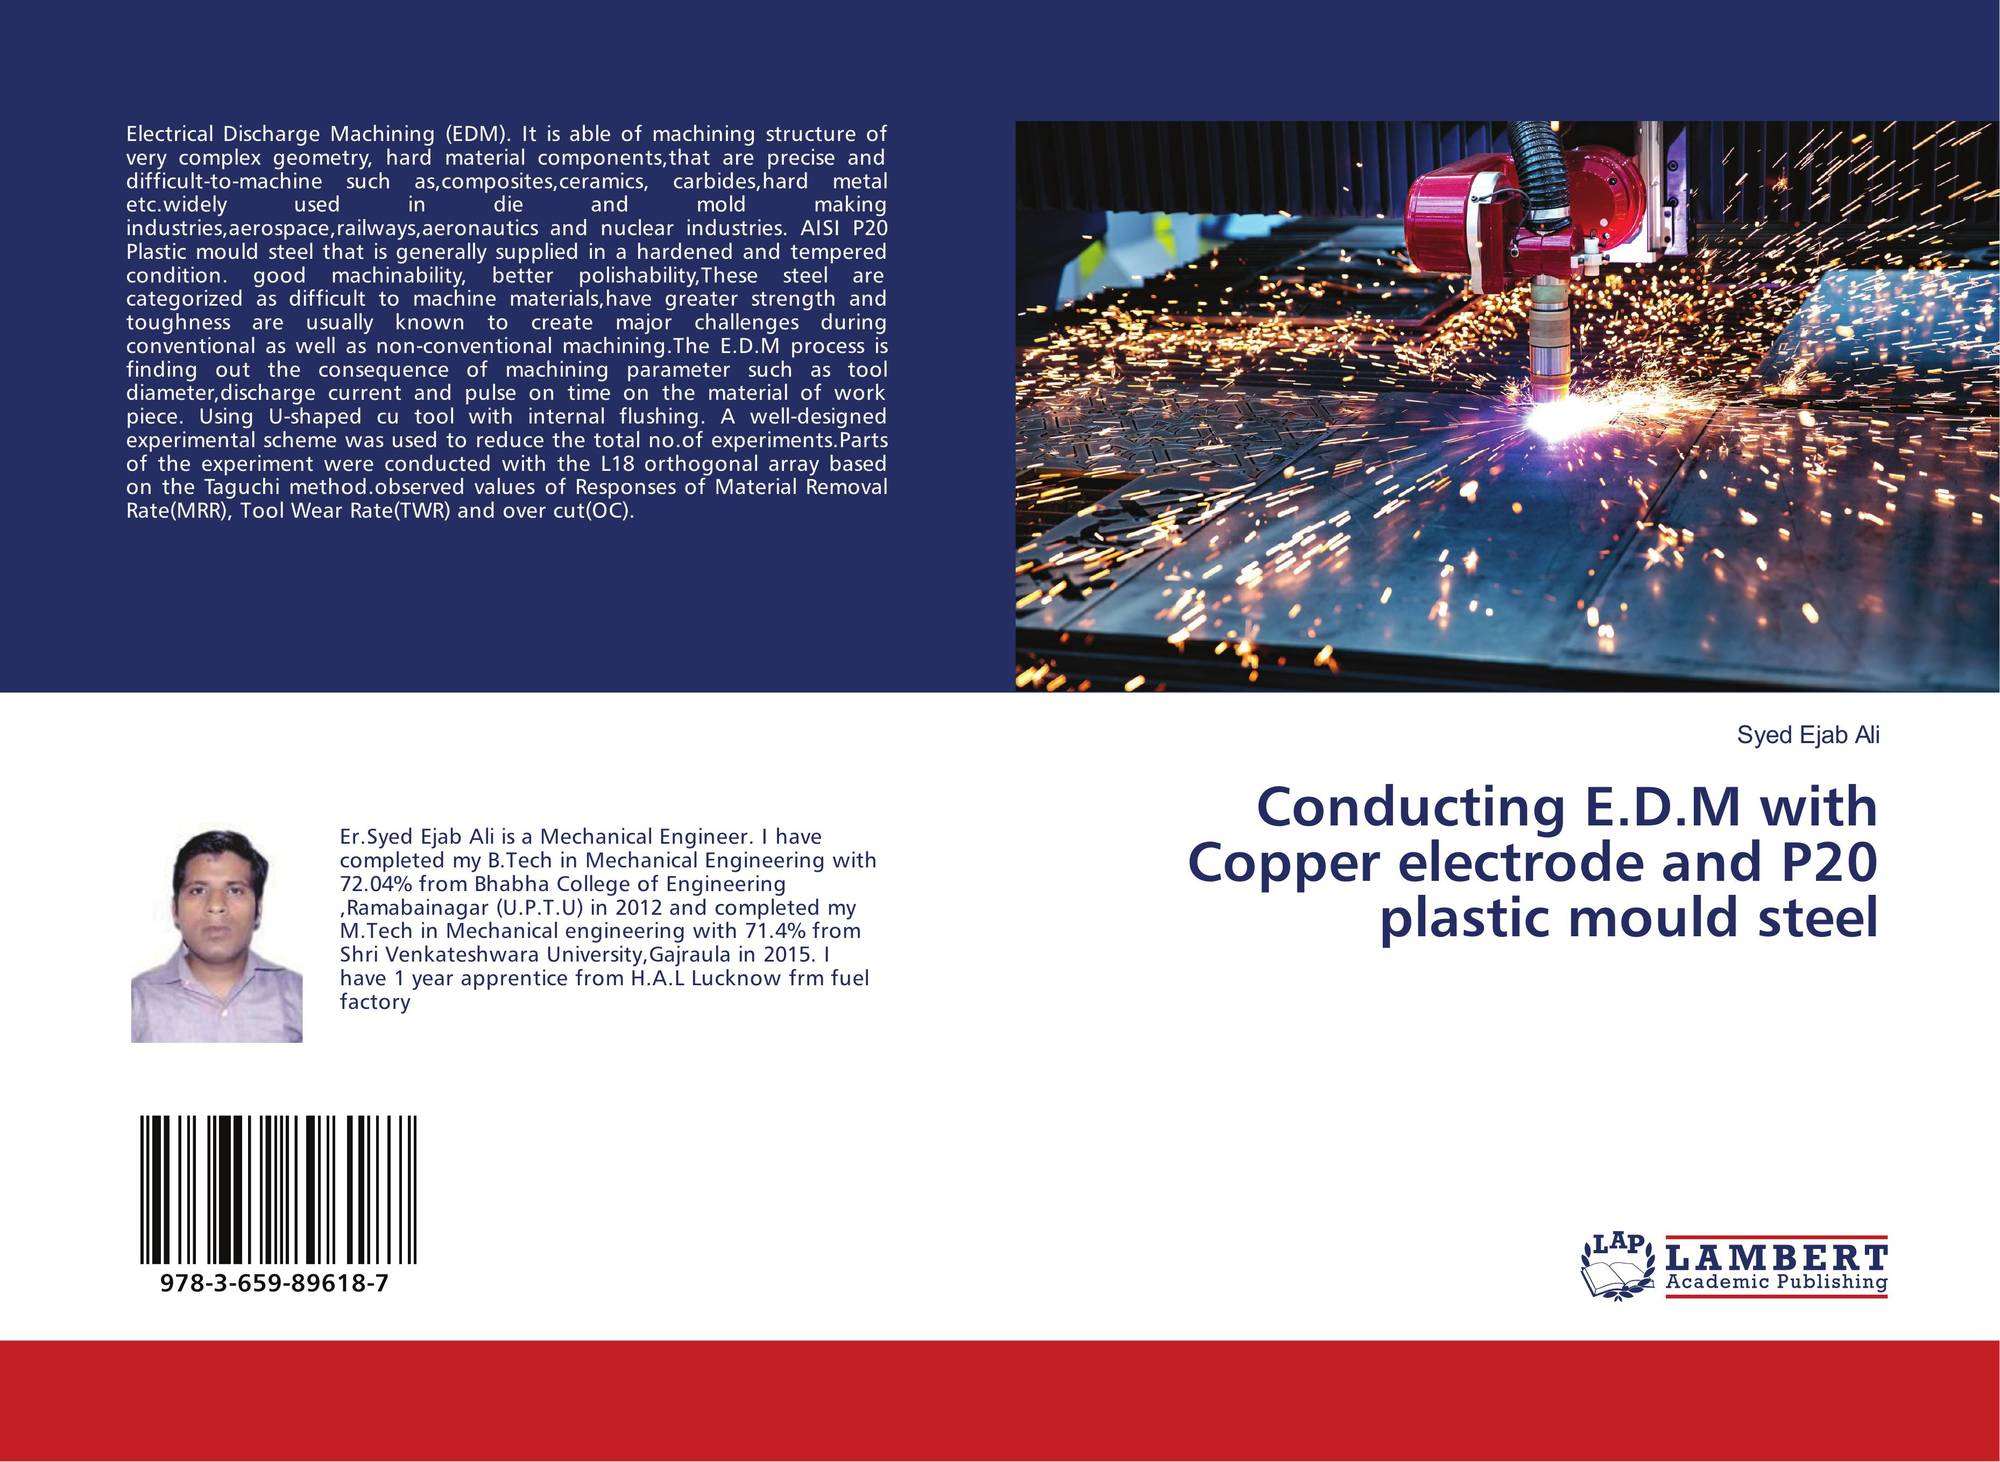 Conducting E D M with Copper electrode and P20 plastic mould steel